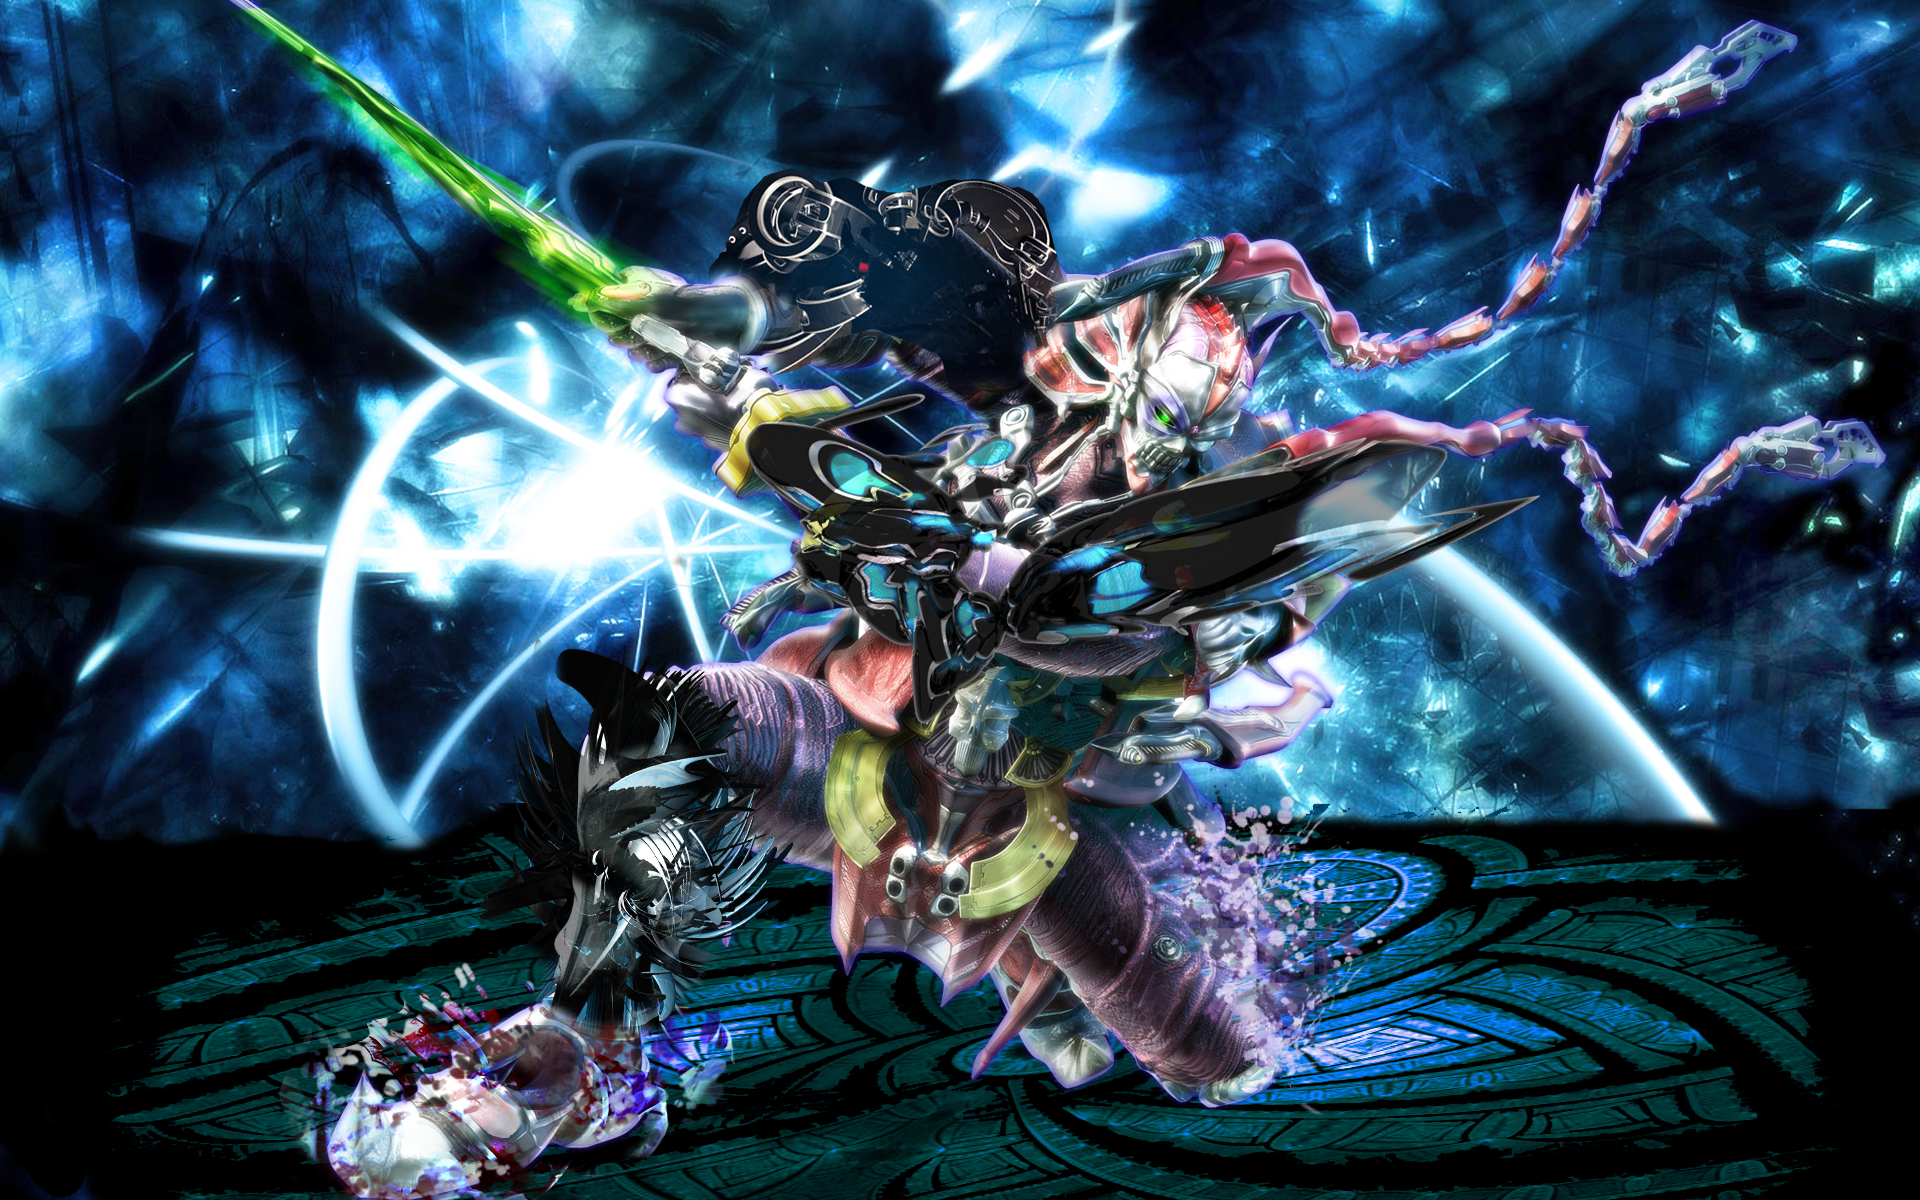 Video Game - Tekken  - Yoshimitsu - Effects - Demon Wallpaper